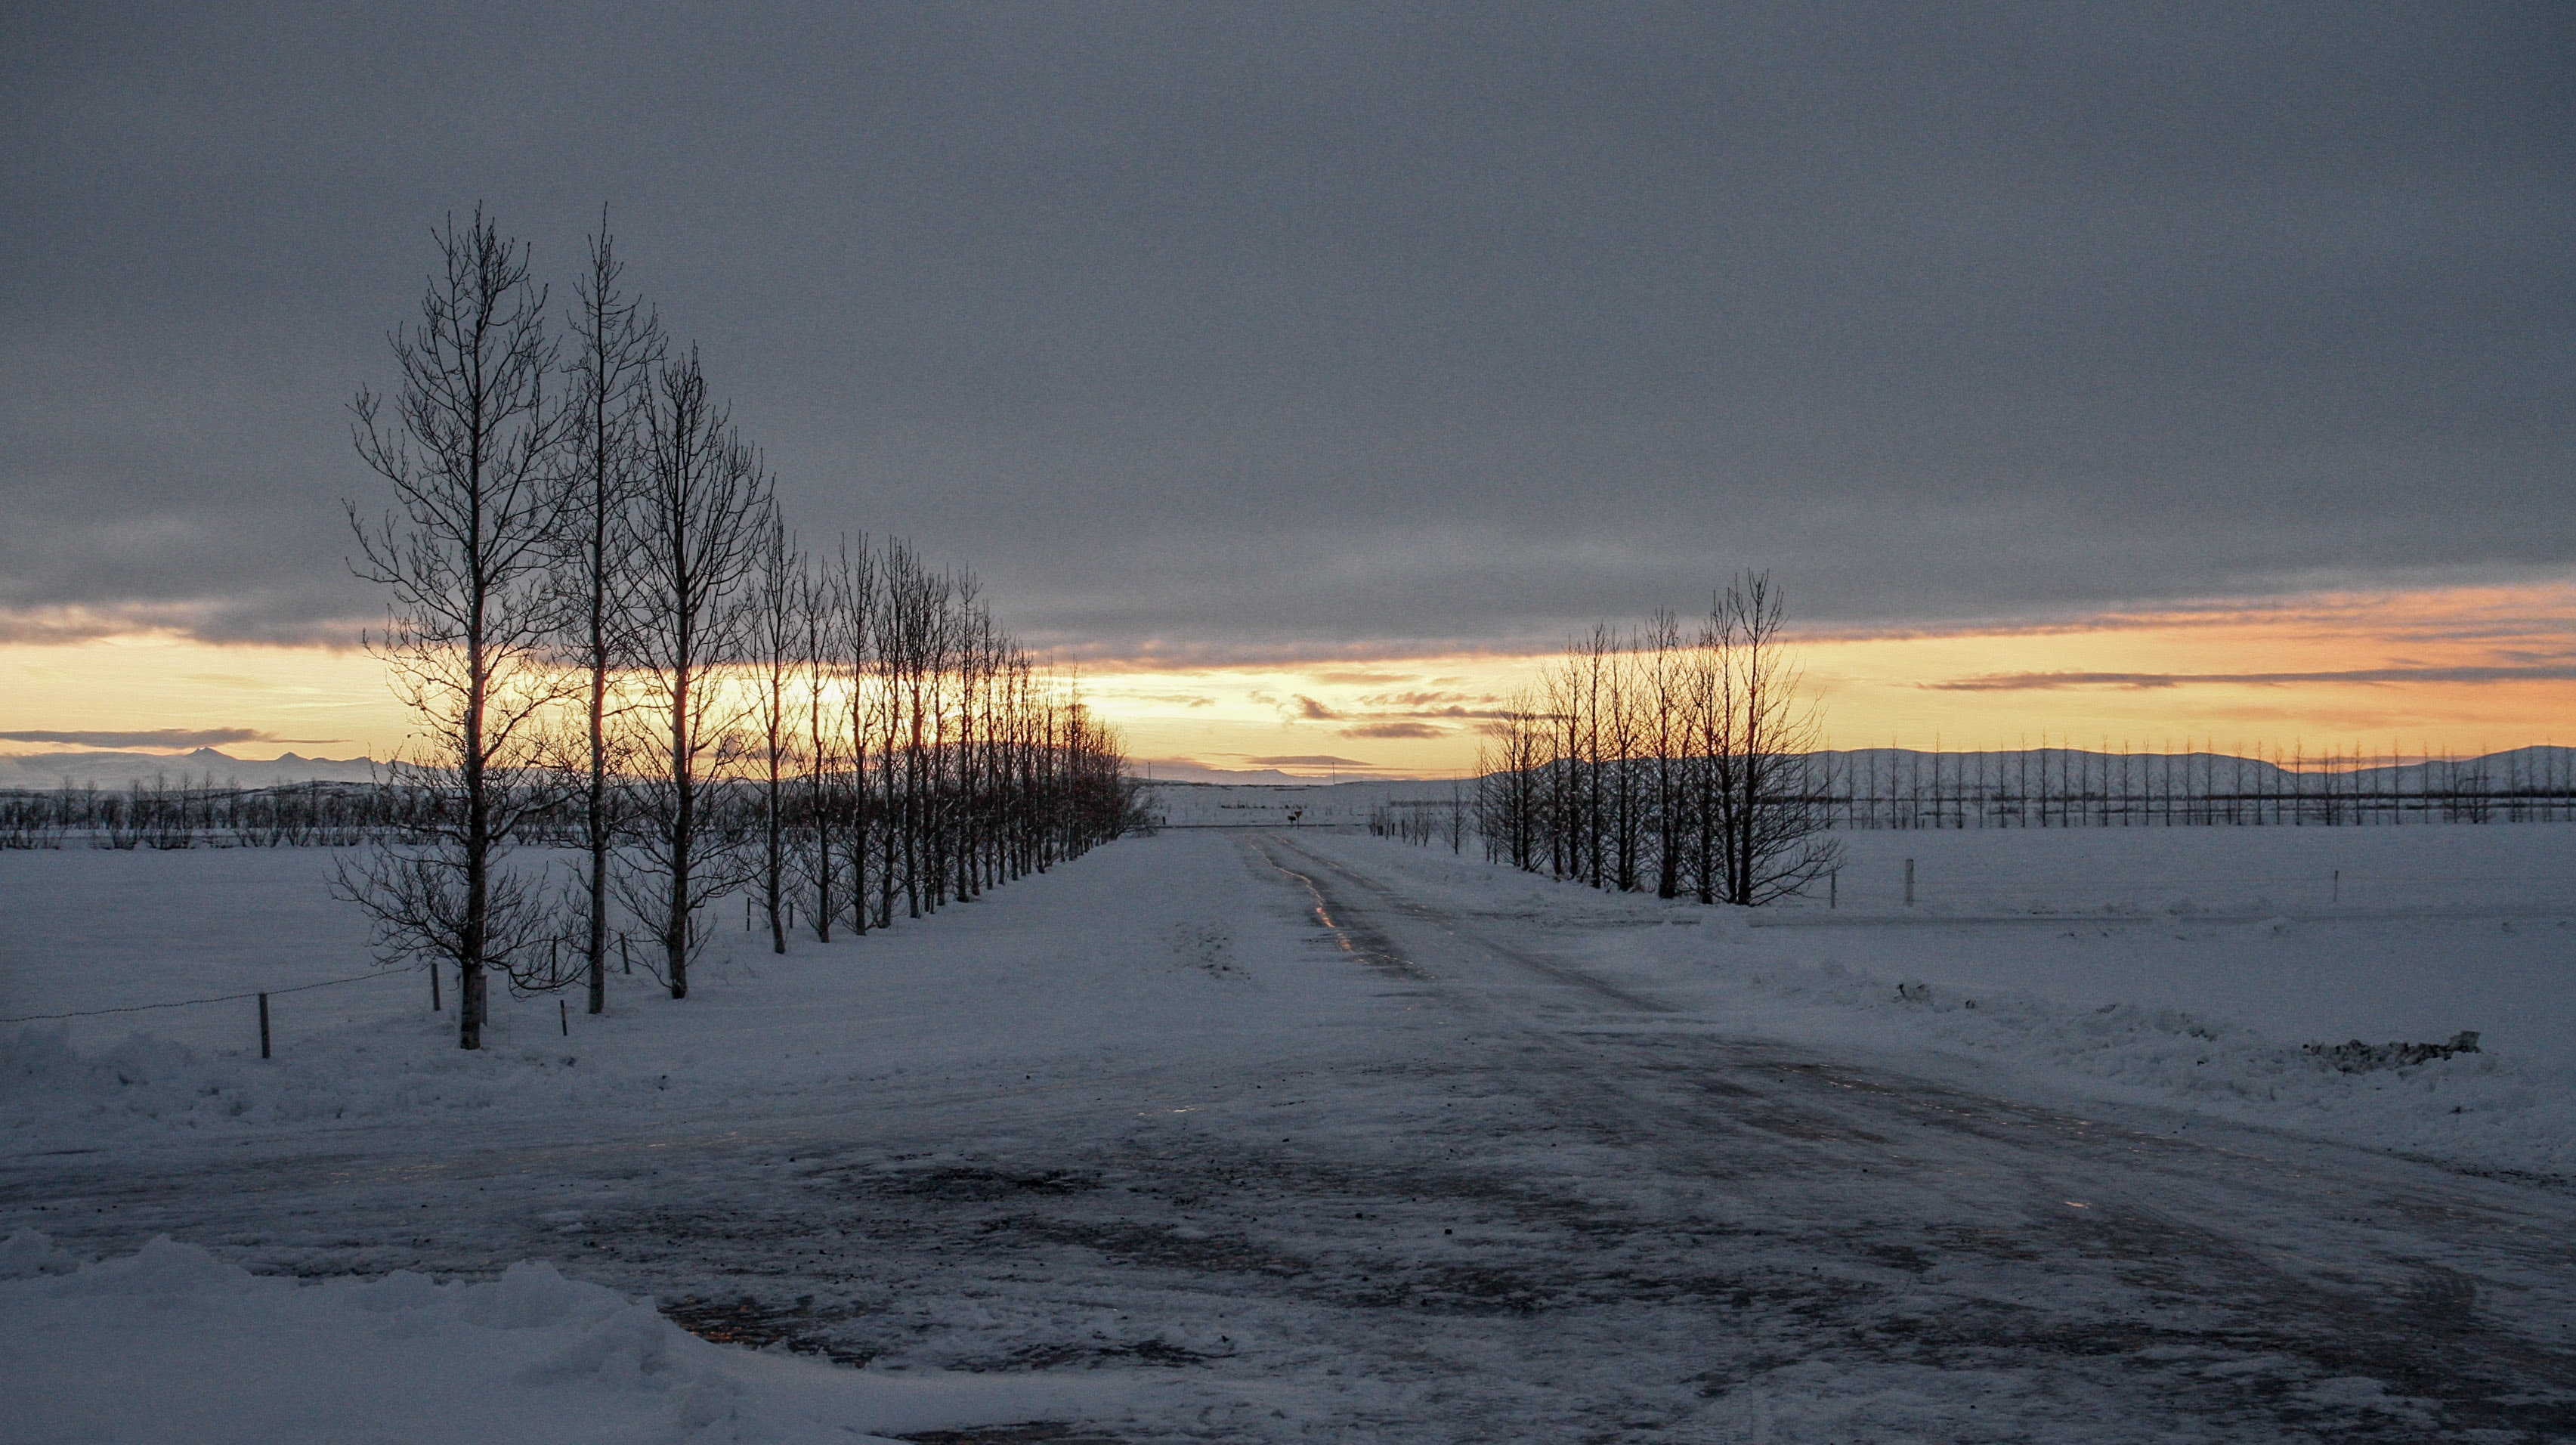 Icy roads in Iceland in January